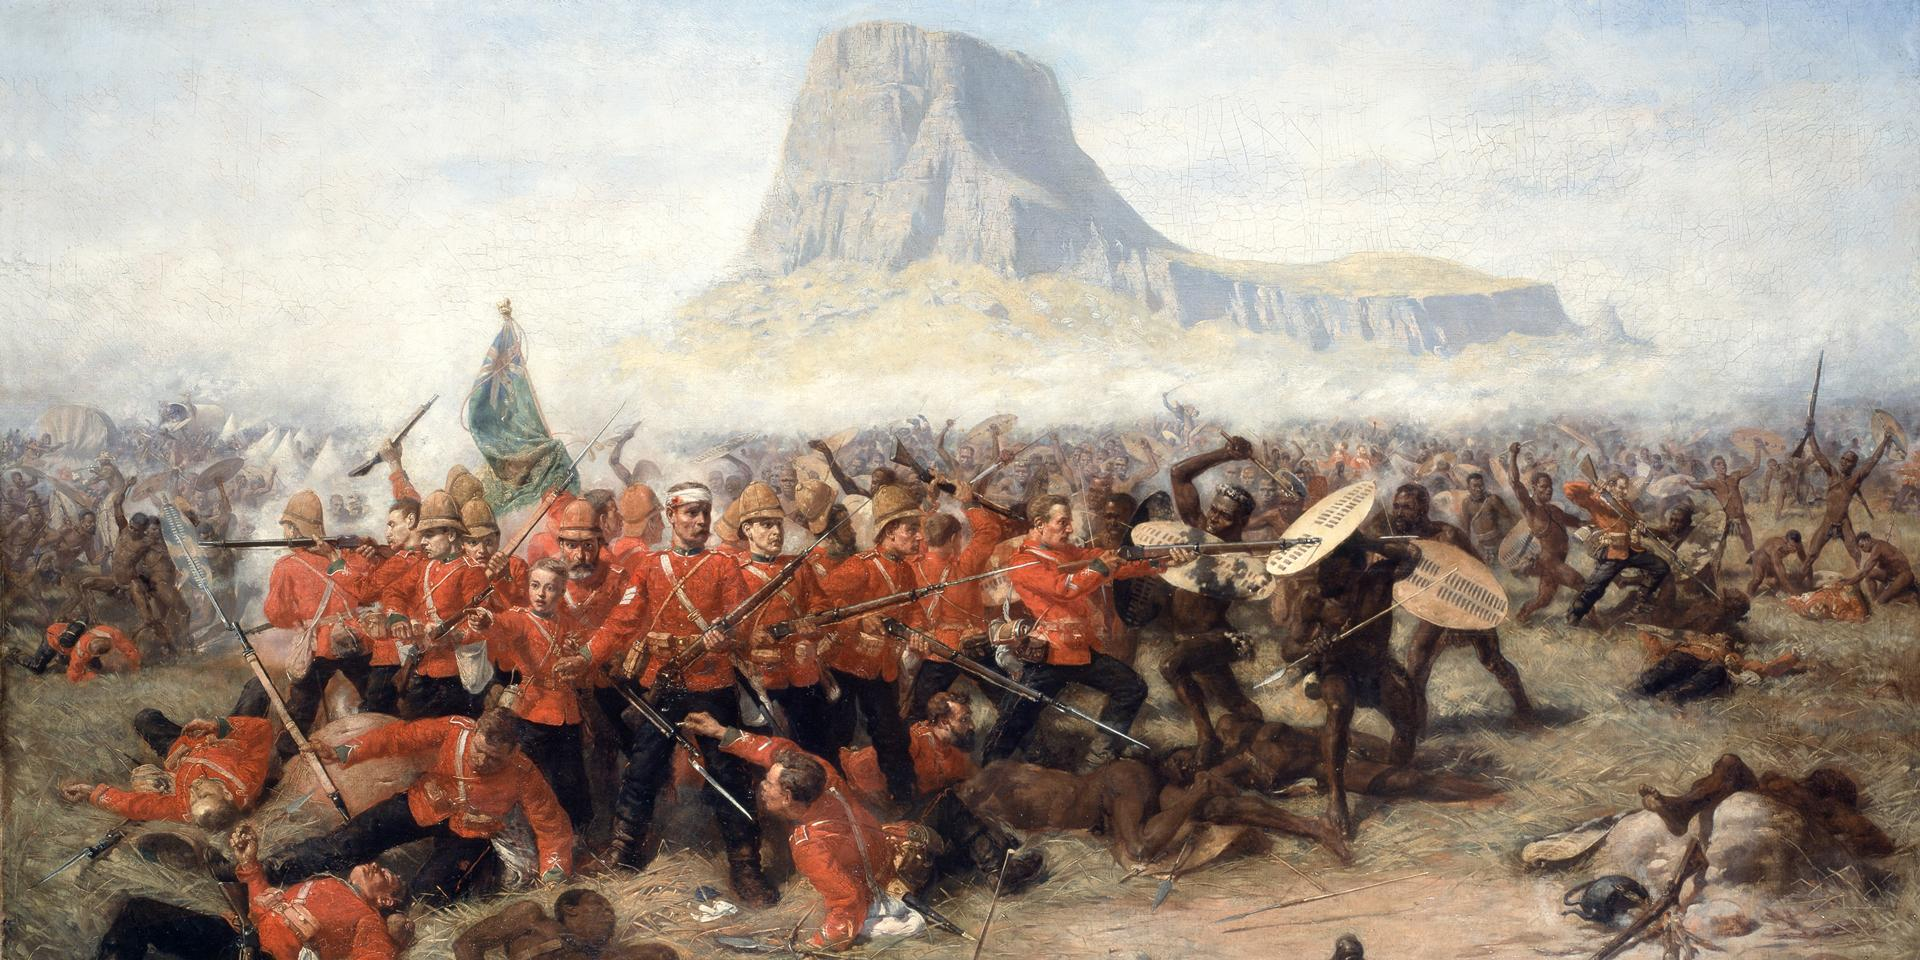 The Battle of Isandlwana after conservation